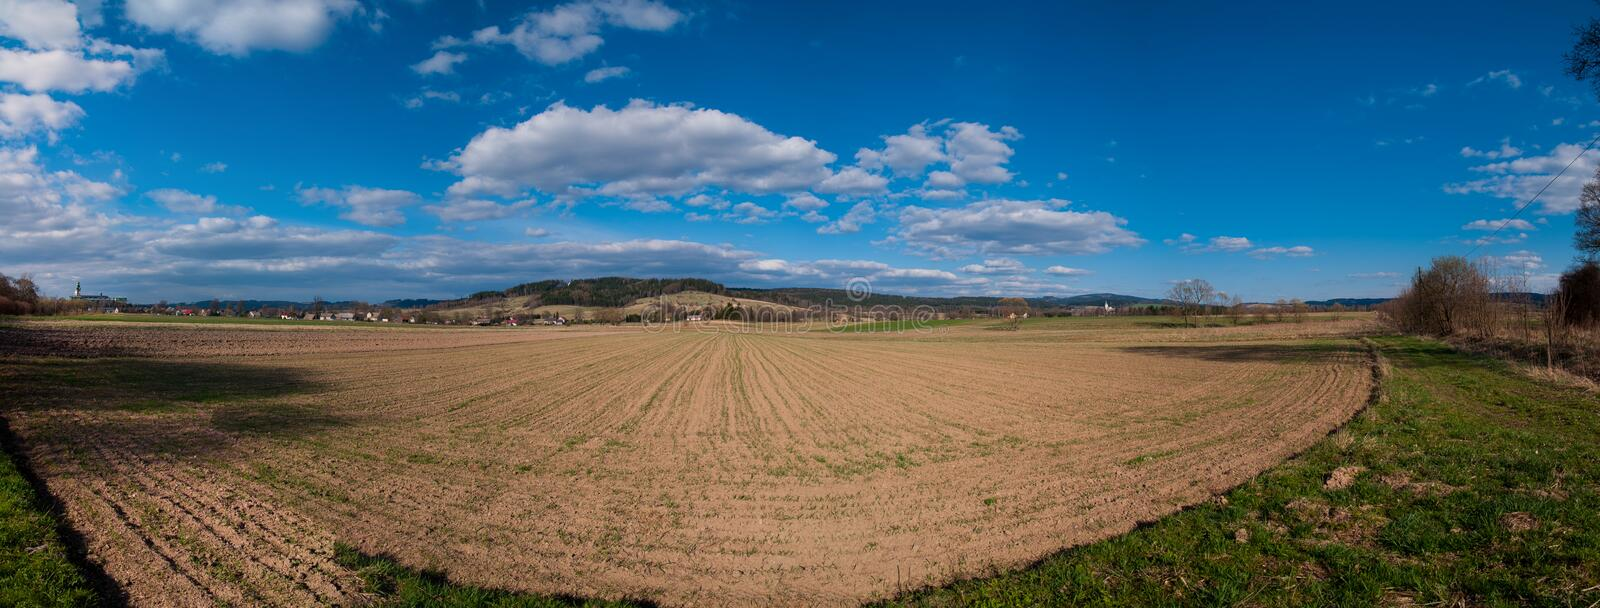 Spring field, Panorama royalty free stock images